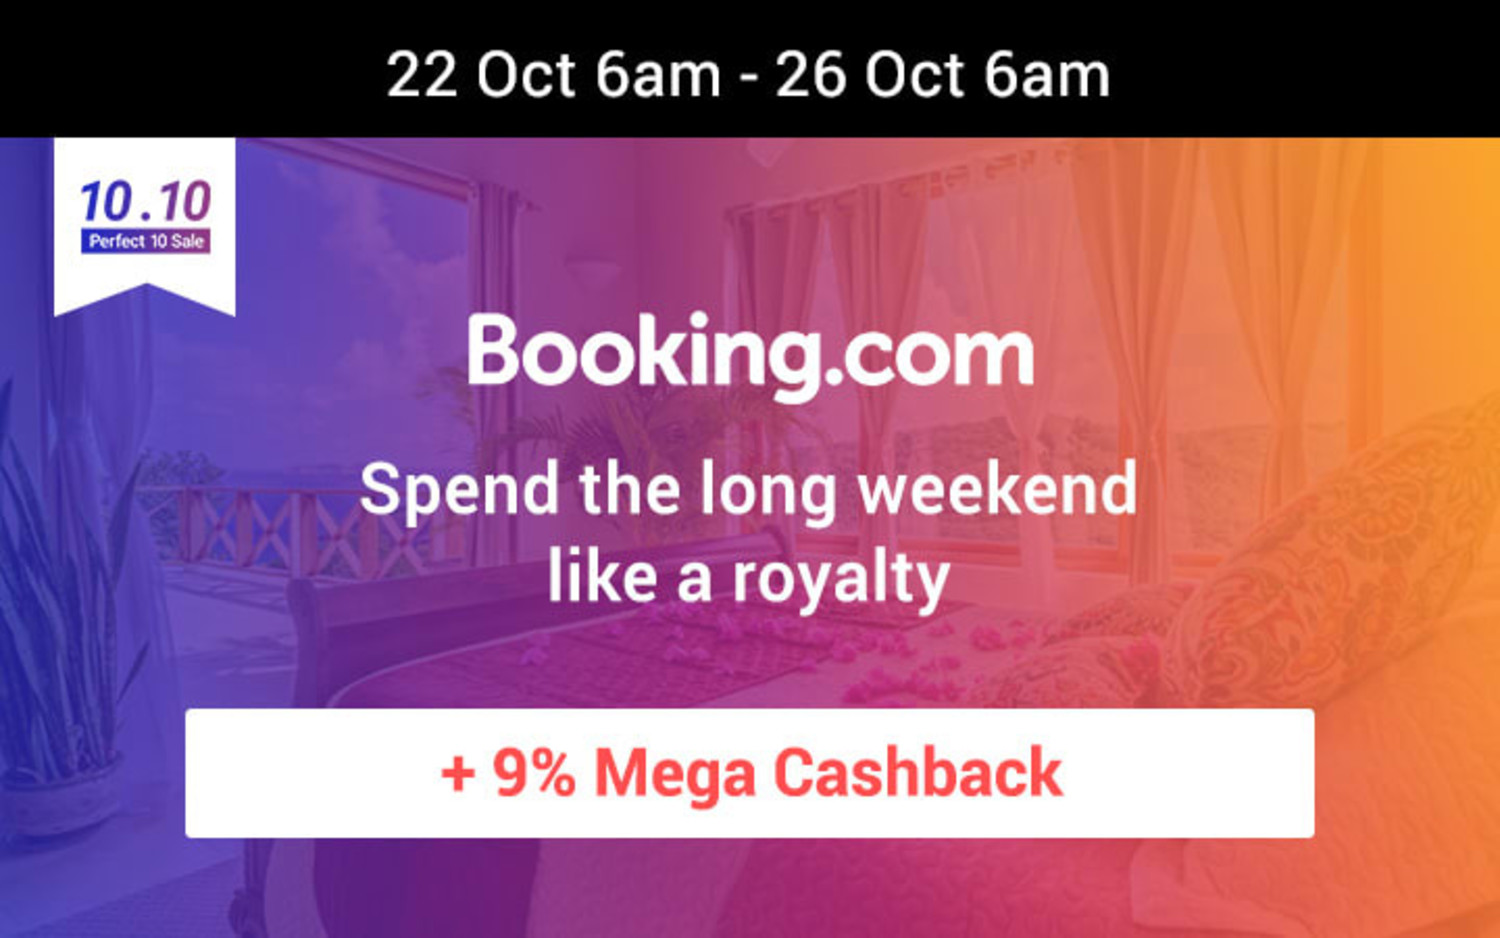 22 Oct 6am  - 26 Oct 6am  | Booking.com: You need a good place to stay in the long holiday break Get 9% Mega Cashback on hotels